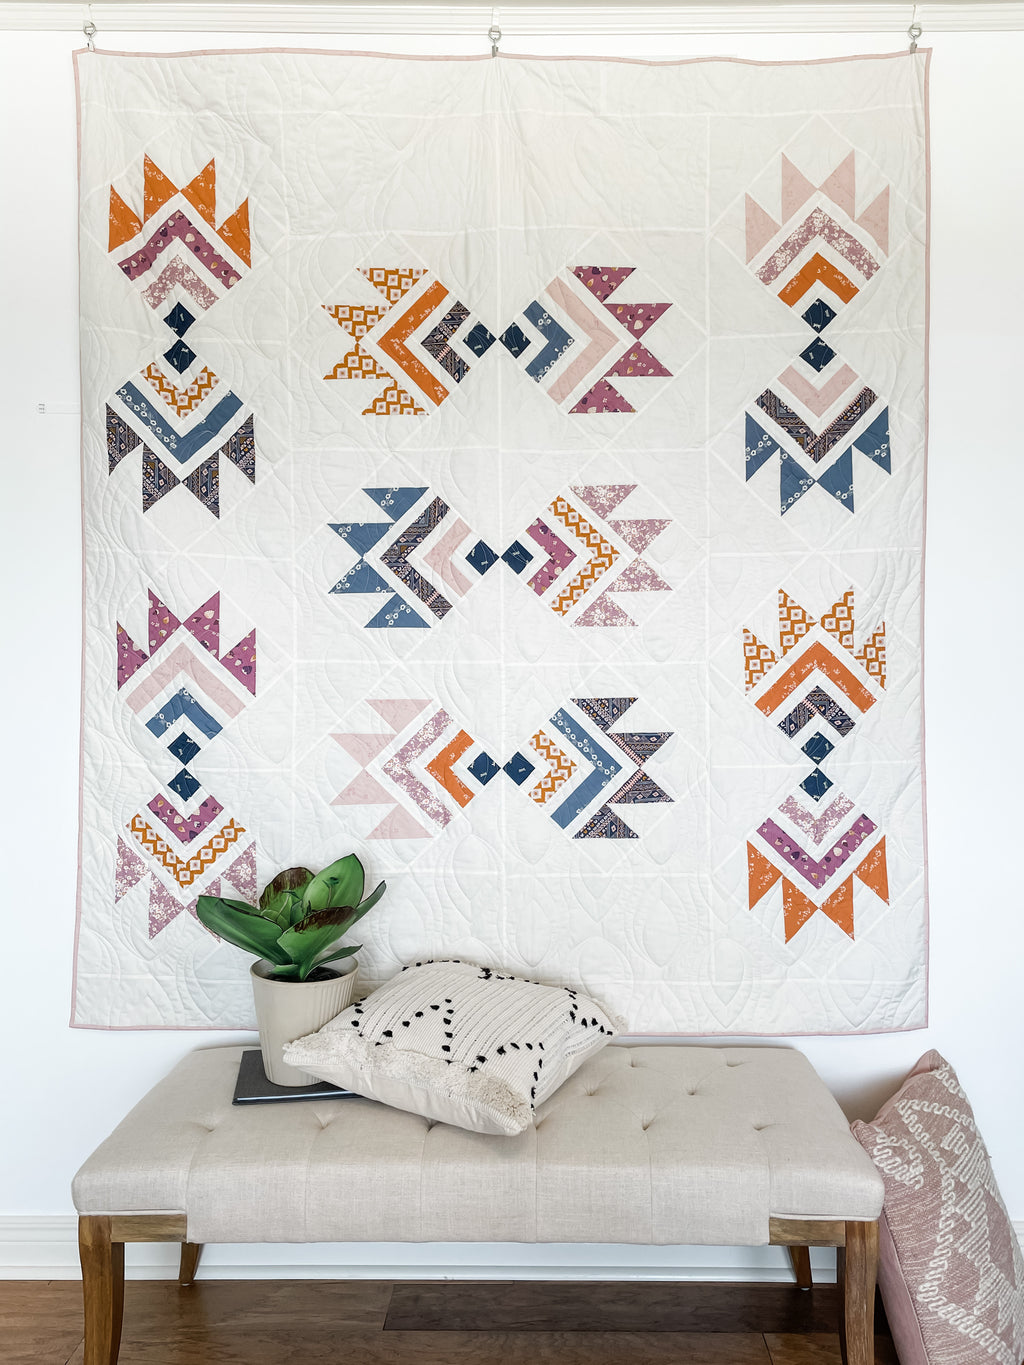 PRE ORDER South Paw Quilt Kit by Sharon Holland featuring Liliput Fabrics